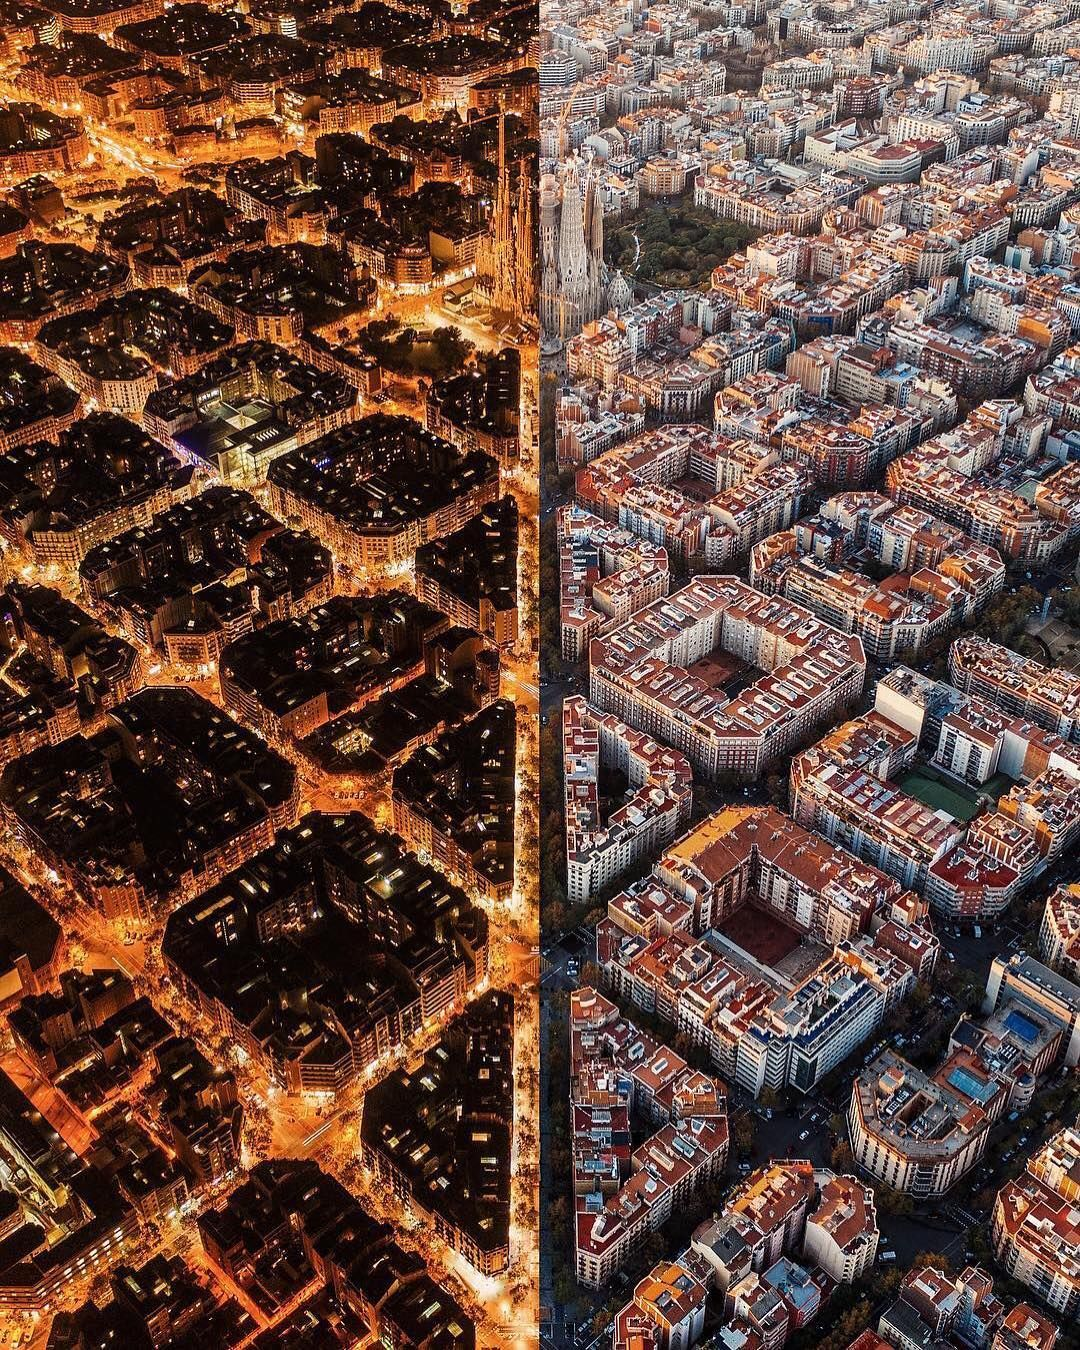 earth official on instagram night and day barcelona spain photo by c will cheyney willcheyney earthofficial day for night city barcelona earth official on instagram night and